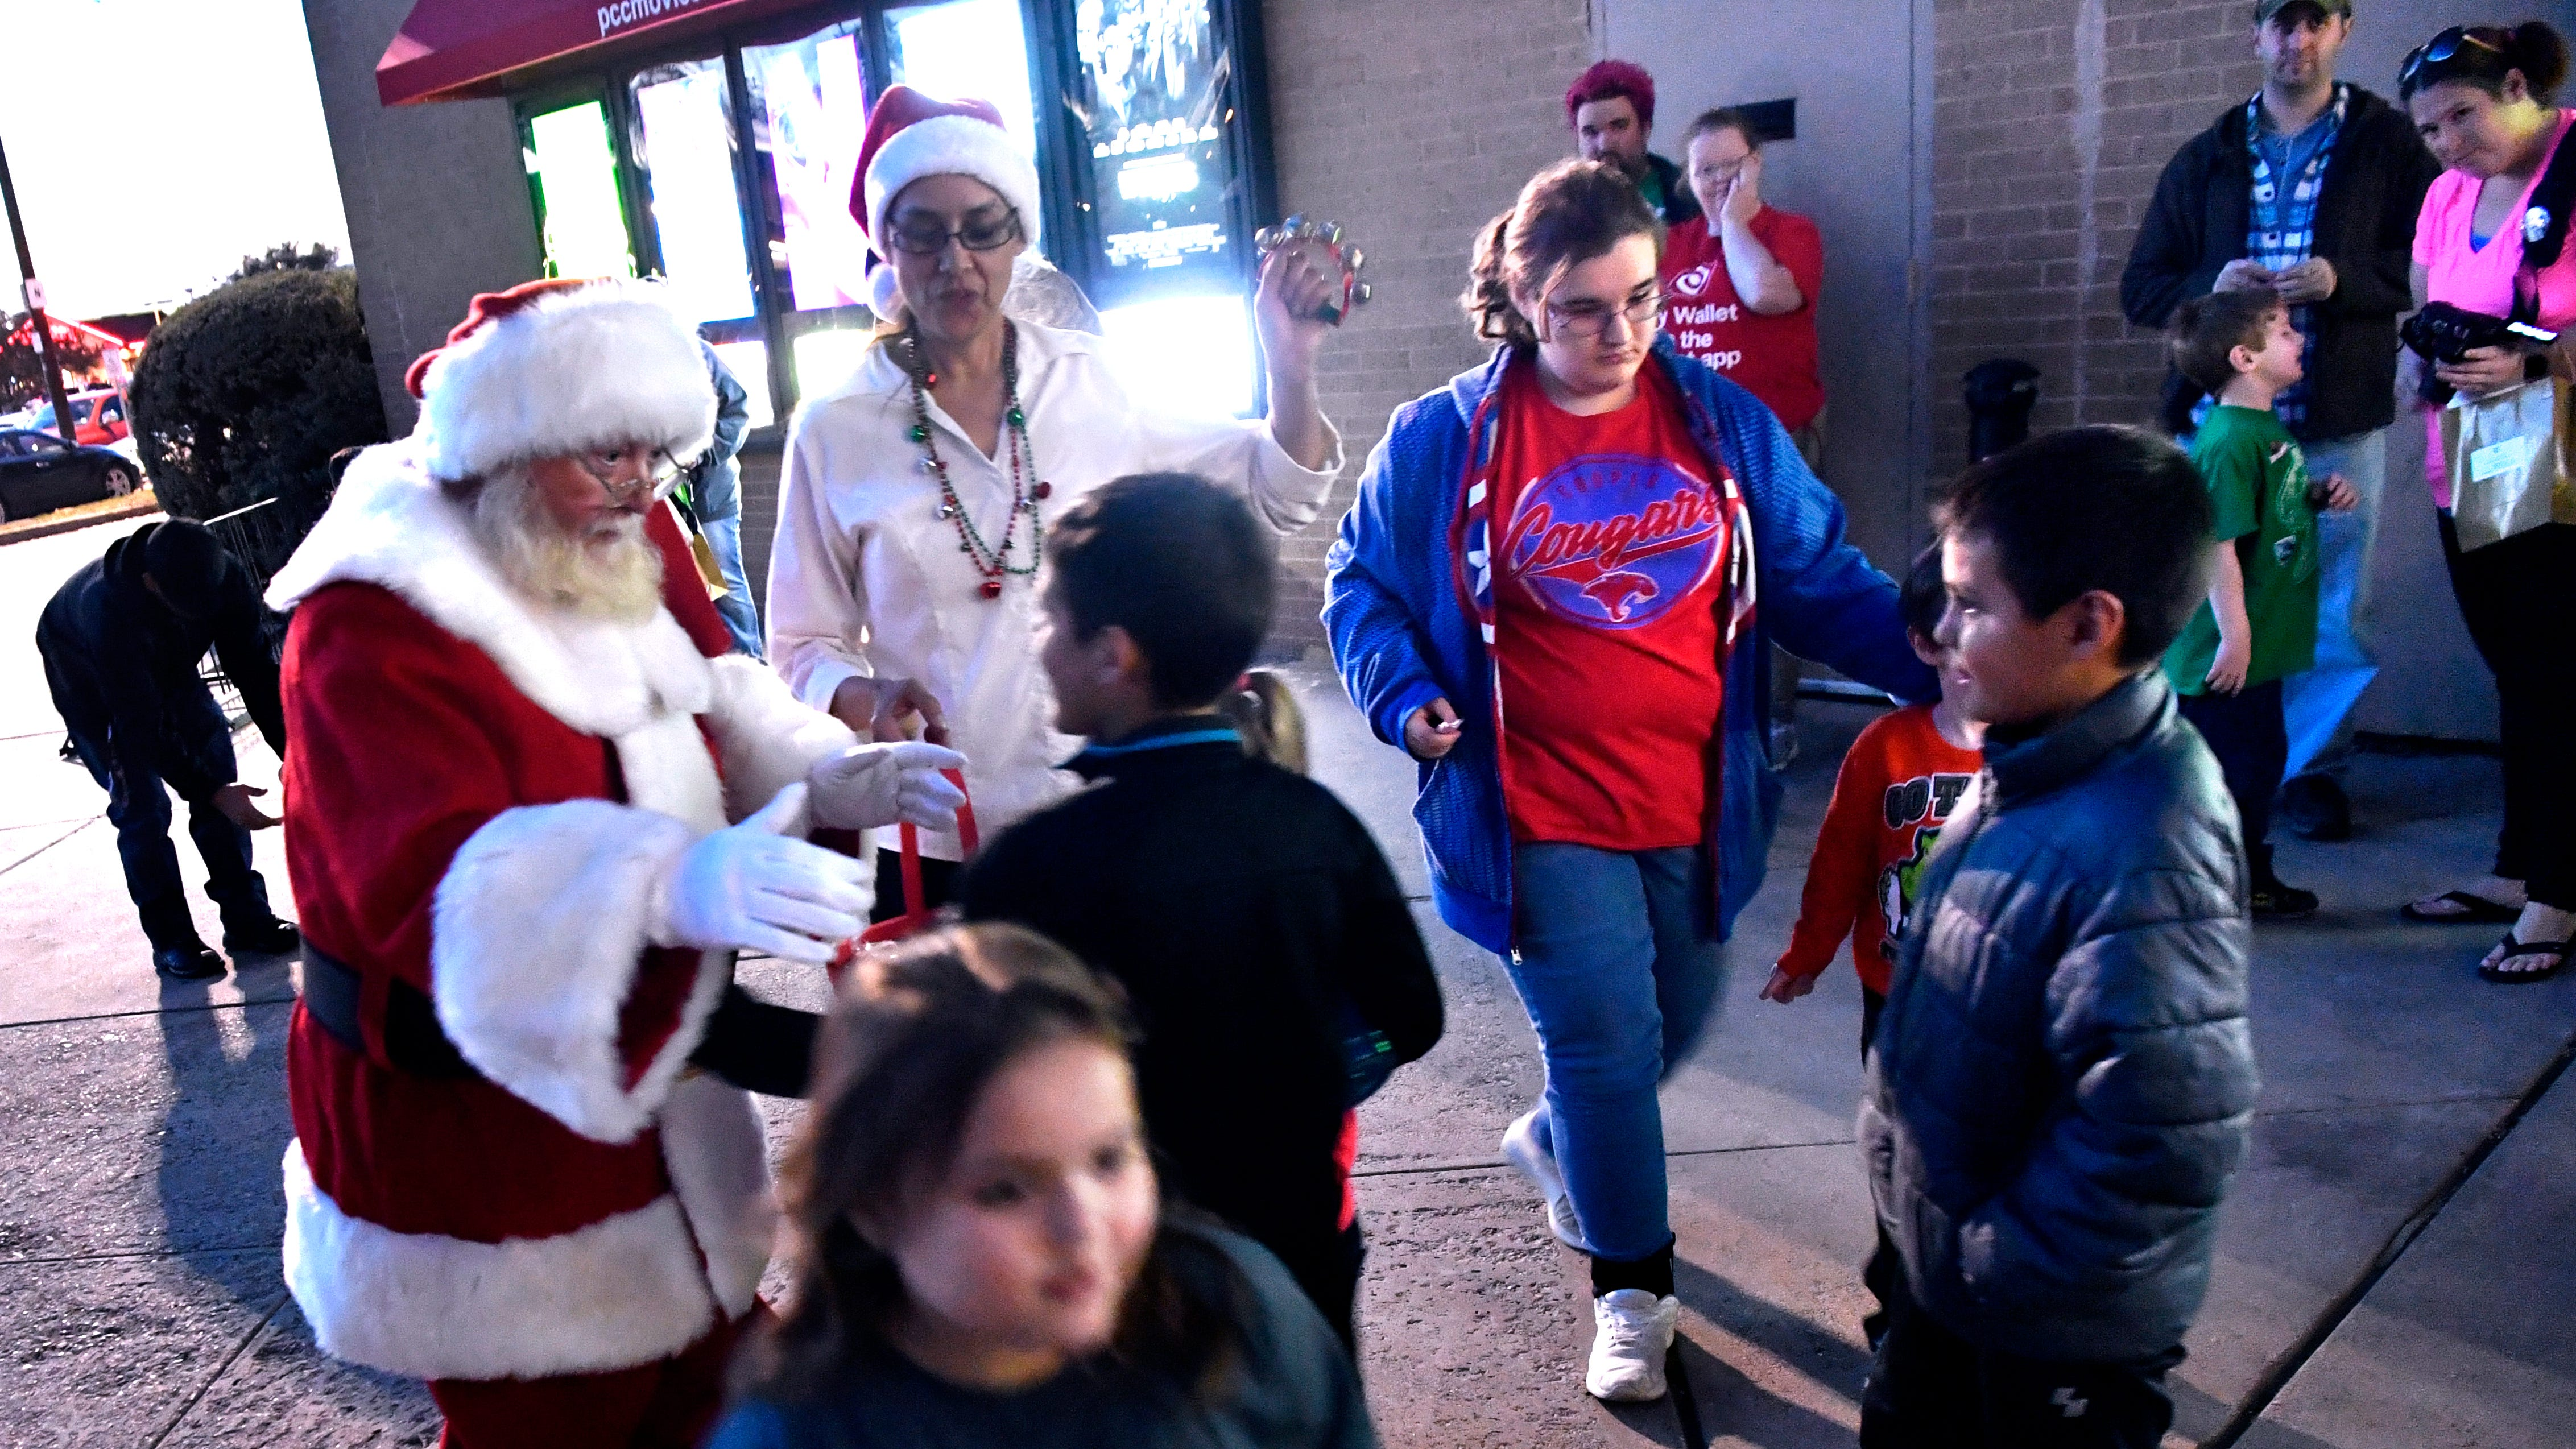 Santa Claus is greeted by children at the Mall of Abilene Friday Nov. 17, 2018. His arrival heralds the beginning of the holiday season, Kris Kringle will be available for consultation and photographs from now until Christmas Eve, excluding Thanksgiving.